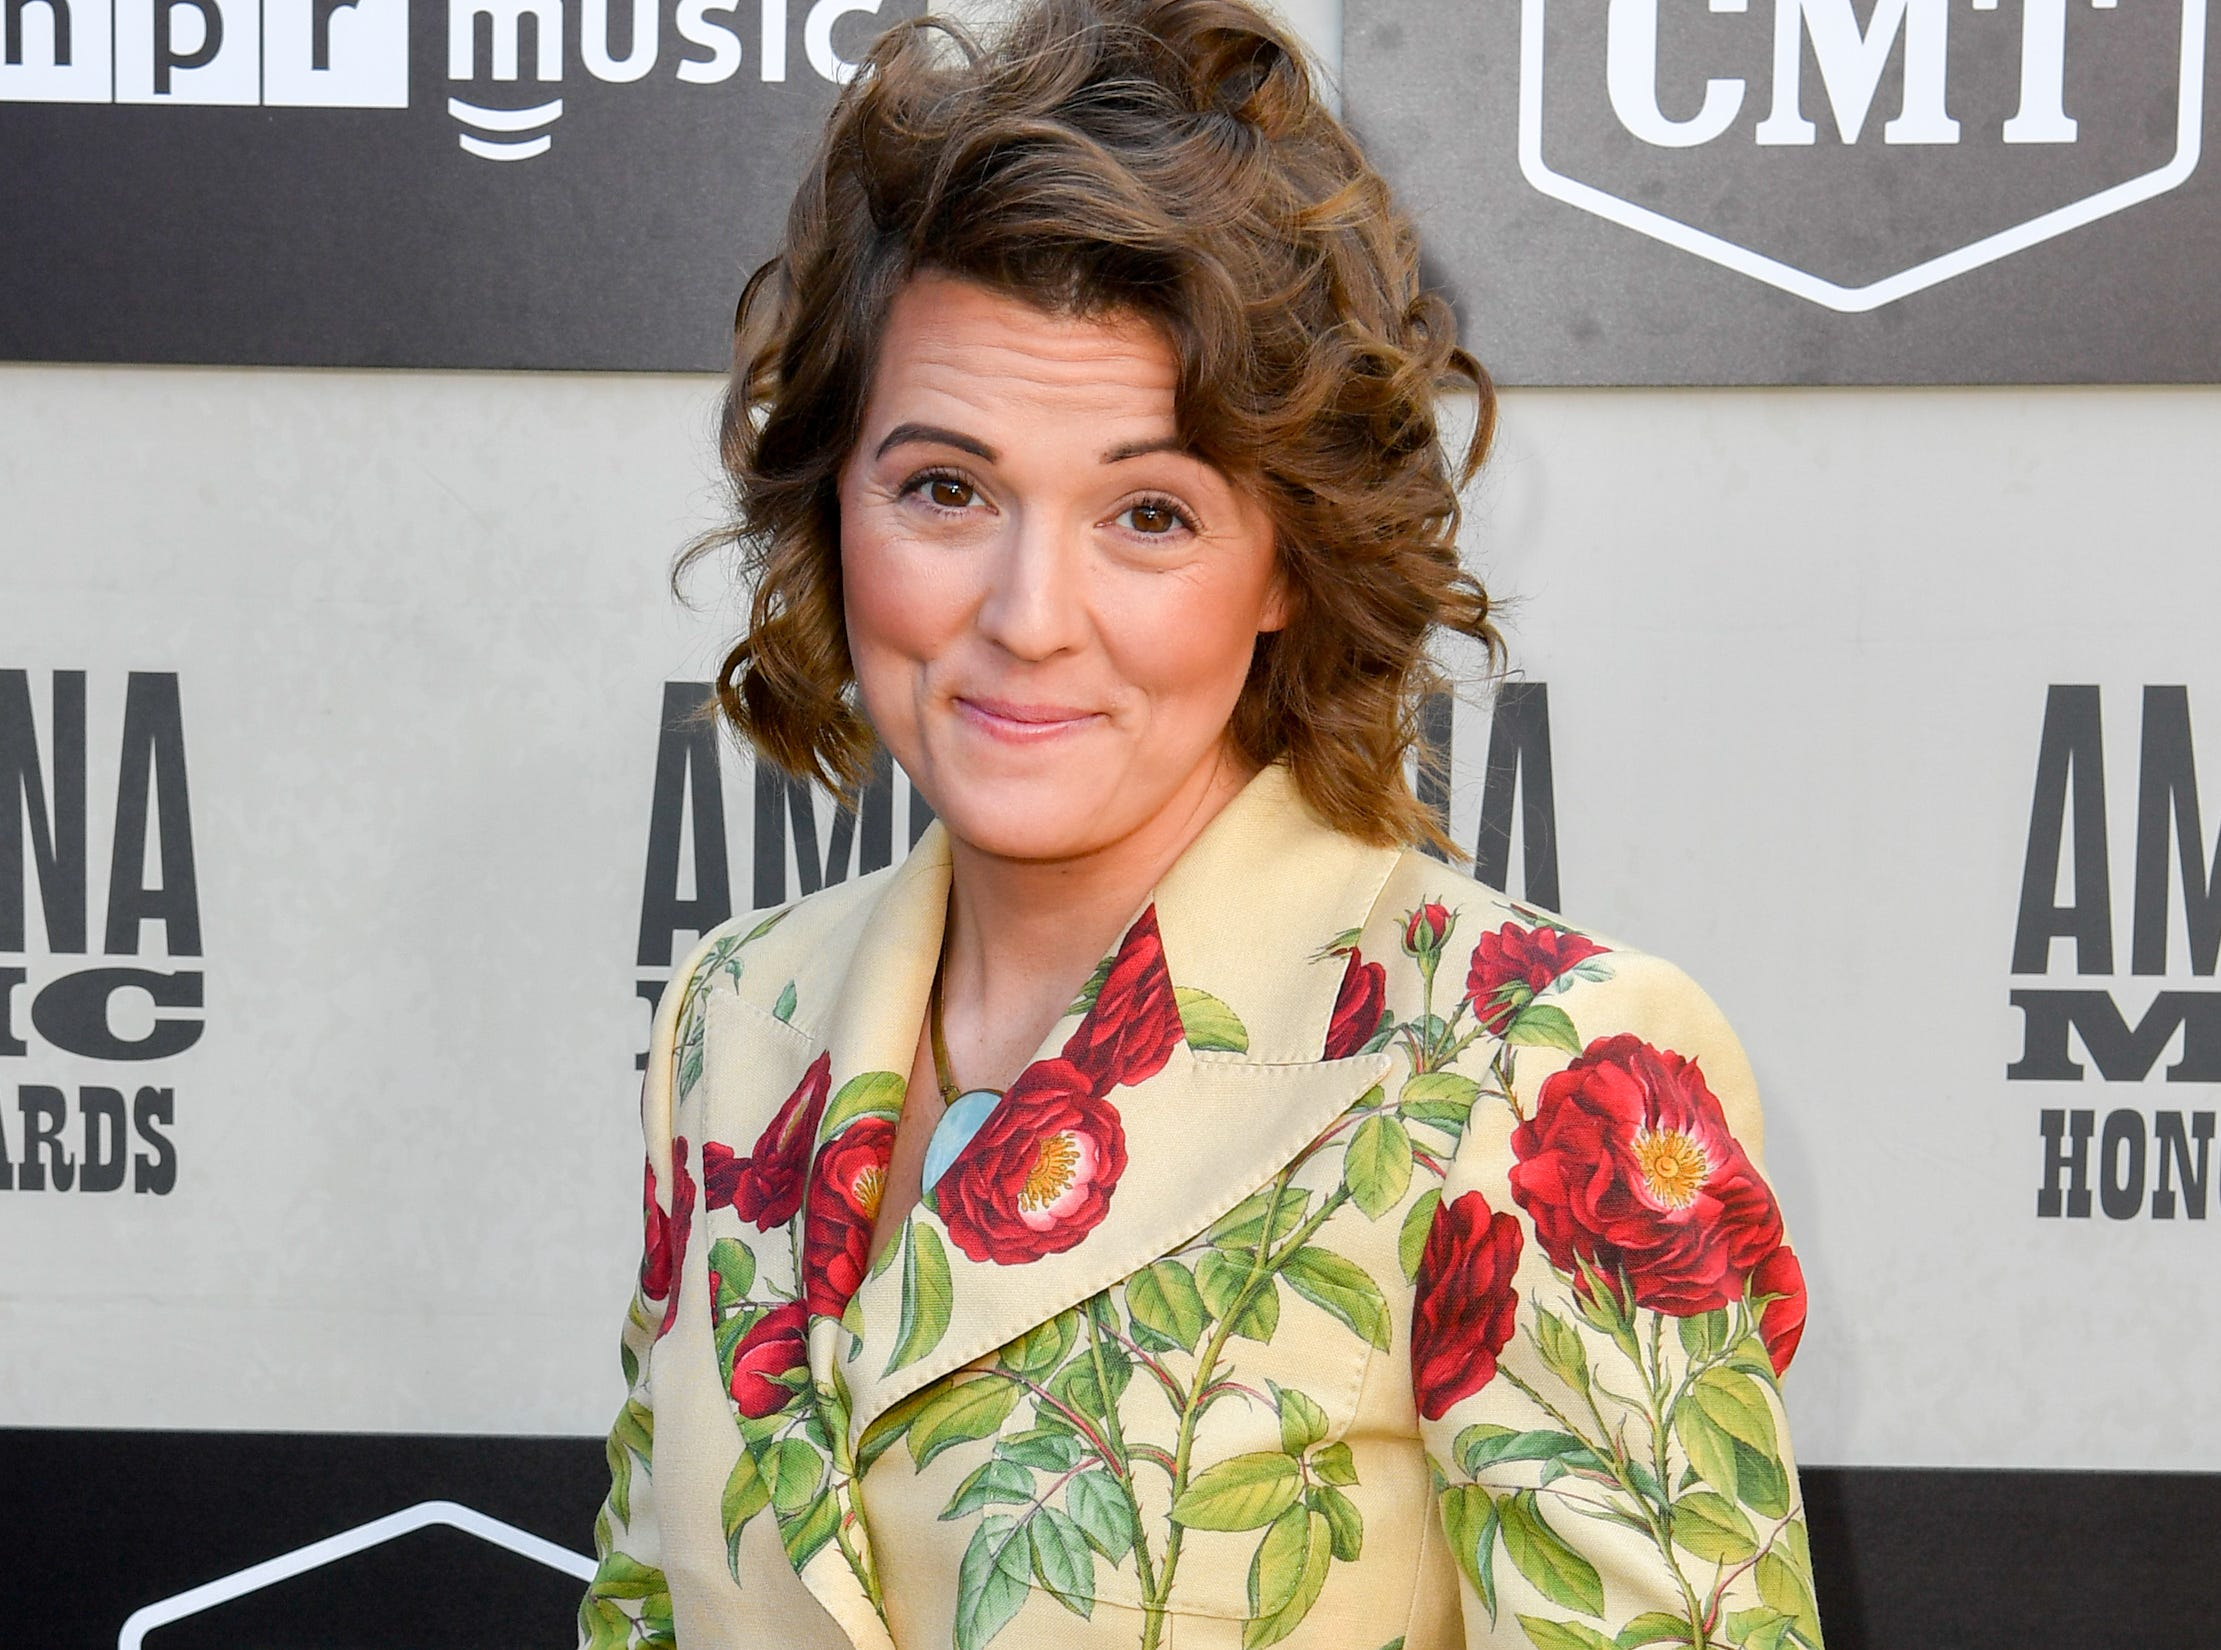 Brandi Carlile poses on the red carpet before the 2018 Americana Honors and Awards show at the Ryman Auditorium in Nashville, Tenn., Wednesday, Sept. 12, 2018.